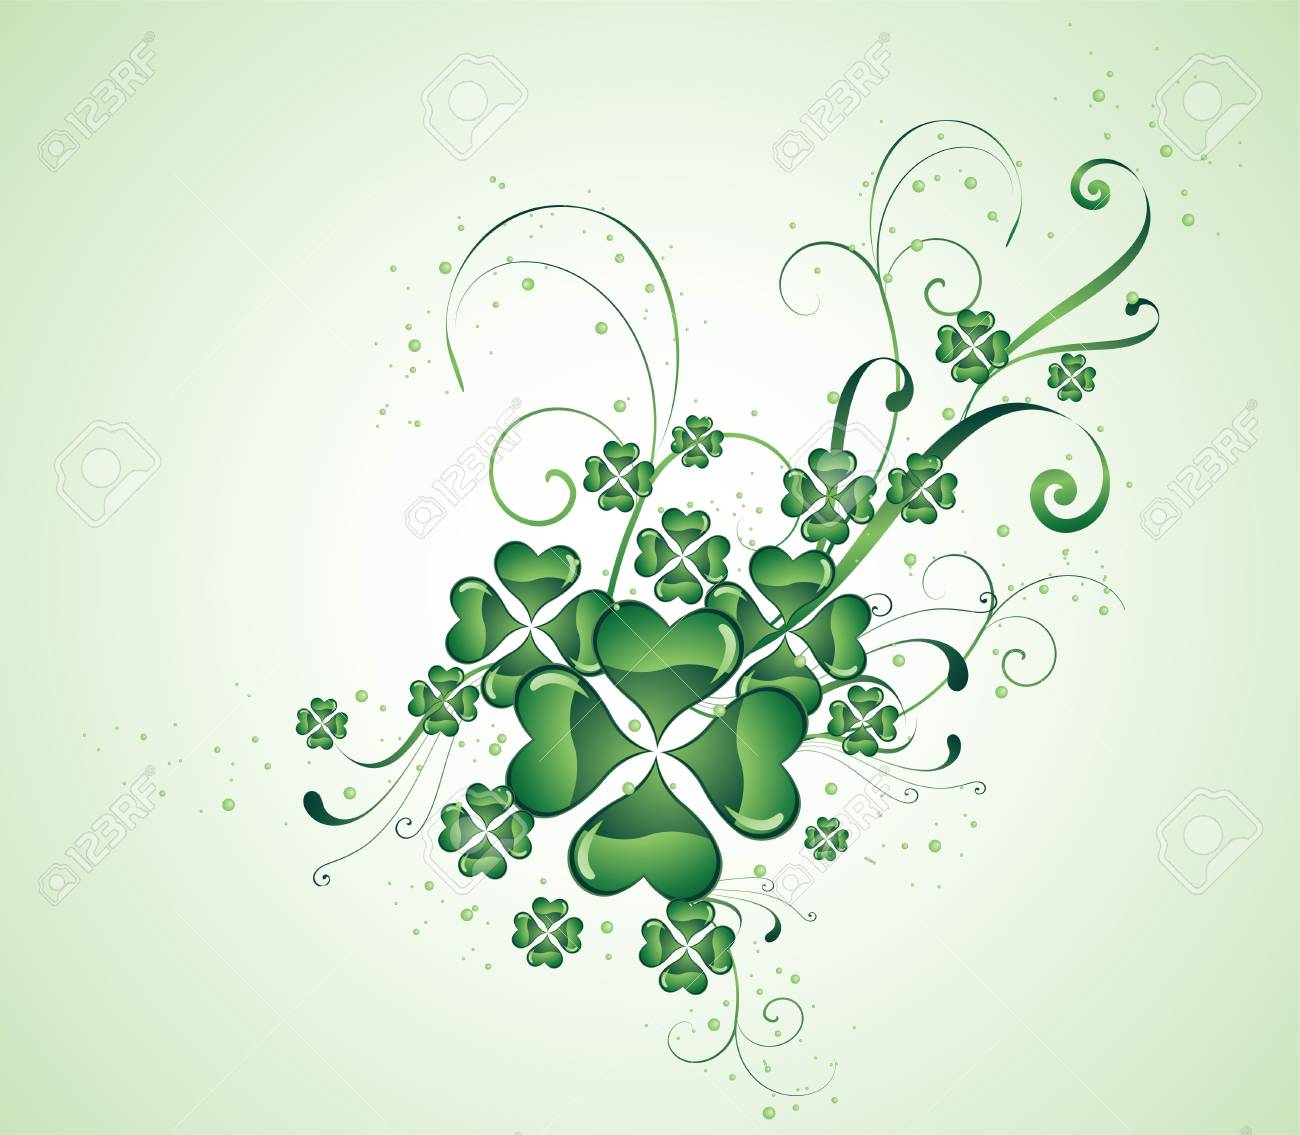 clover background for the St. Patrick's Day Stock Vector - 6389196